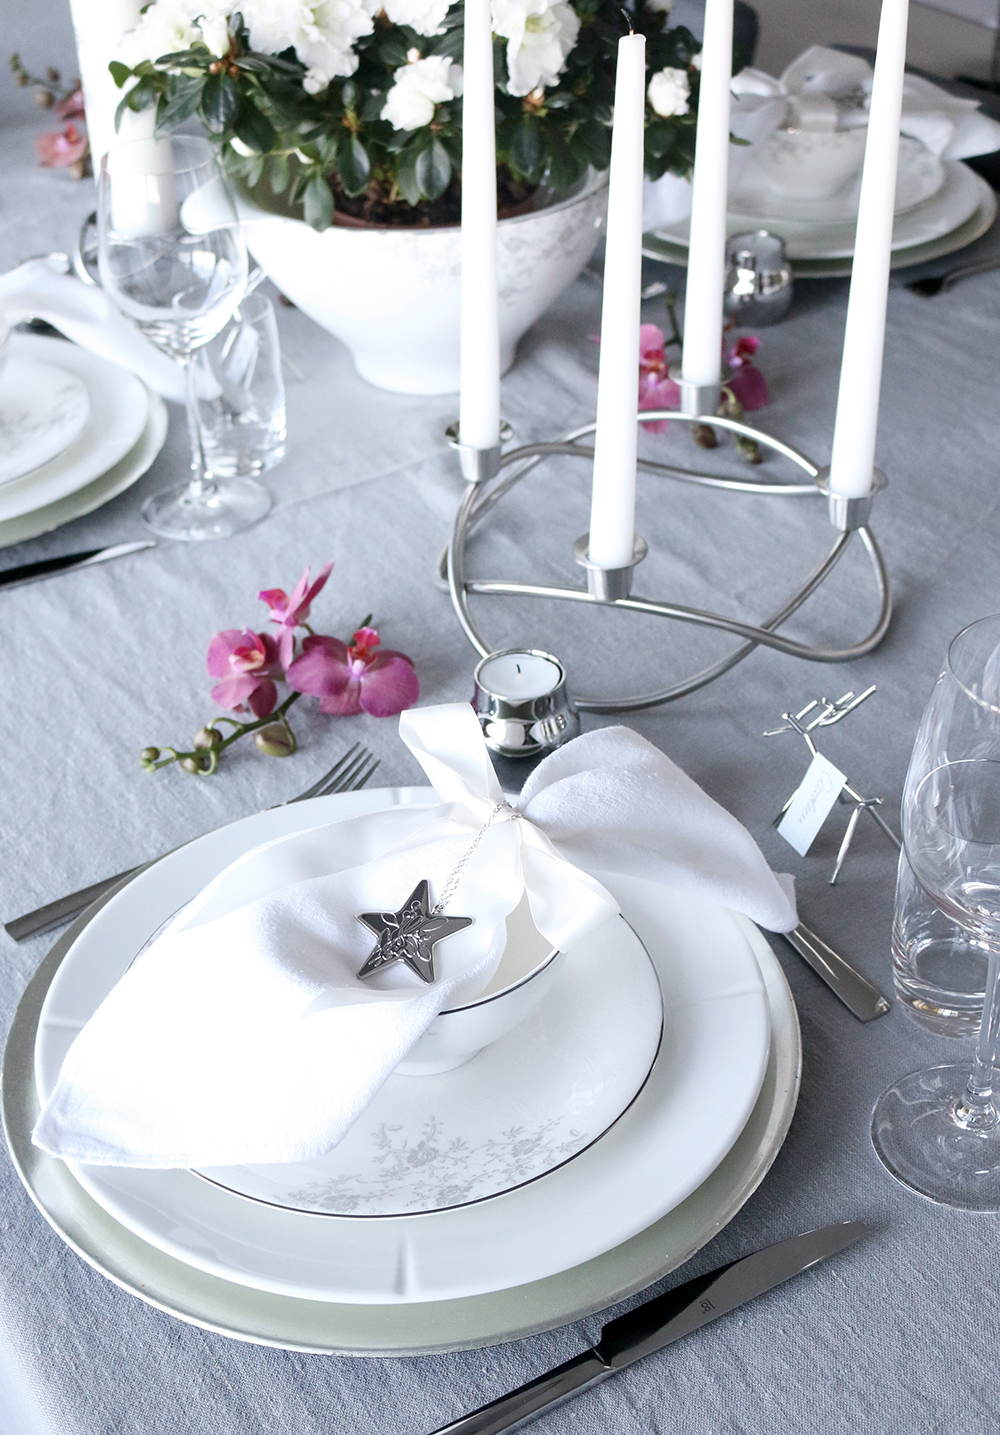 Tilbords Table setting Advent grey hvite purple 16